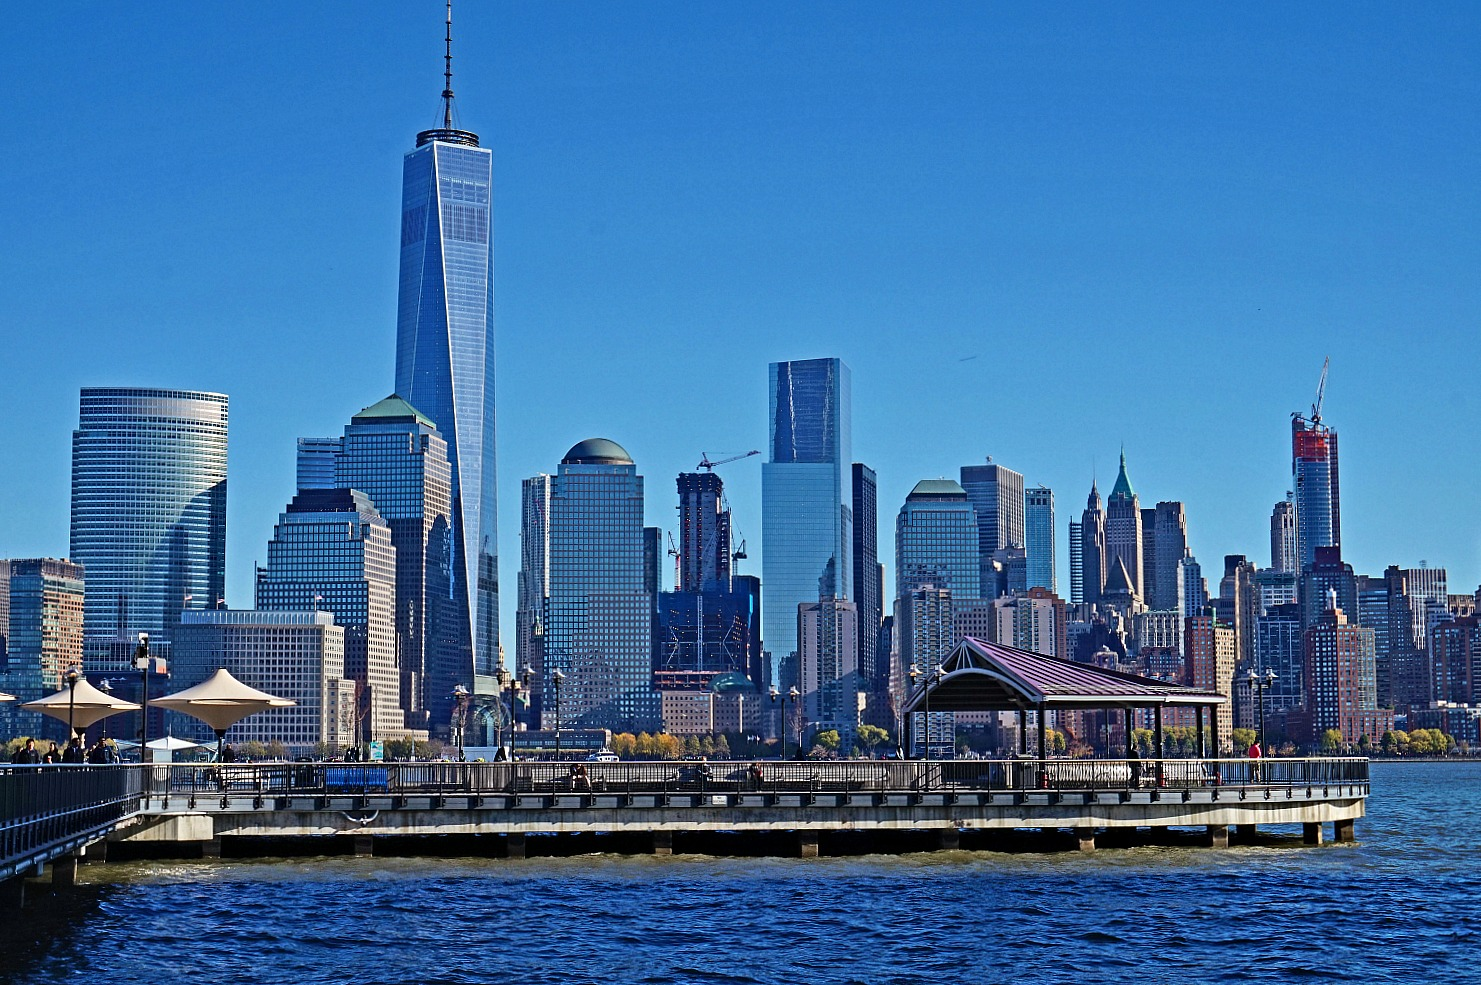 Well developed Jersey City waterfront offers many beautiful areas to relax with the view of New York City.